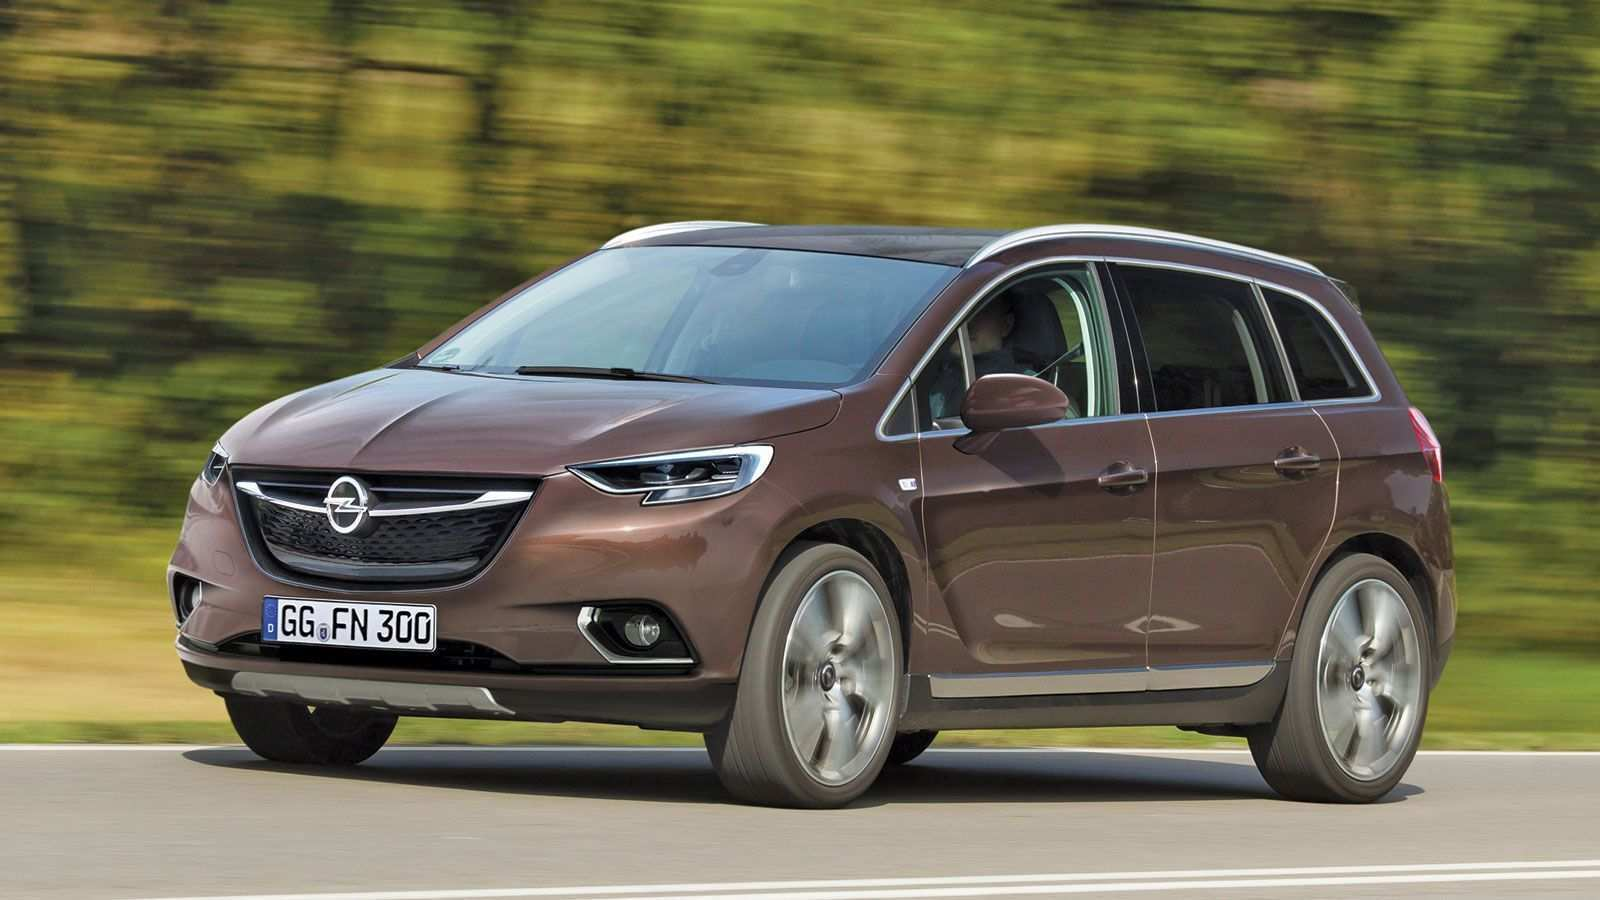 11 Gallery of Opel Meriva 2020 Research New for Opel Meriva 2020